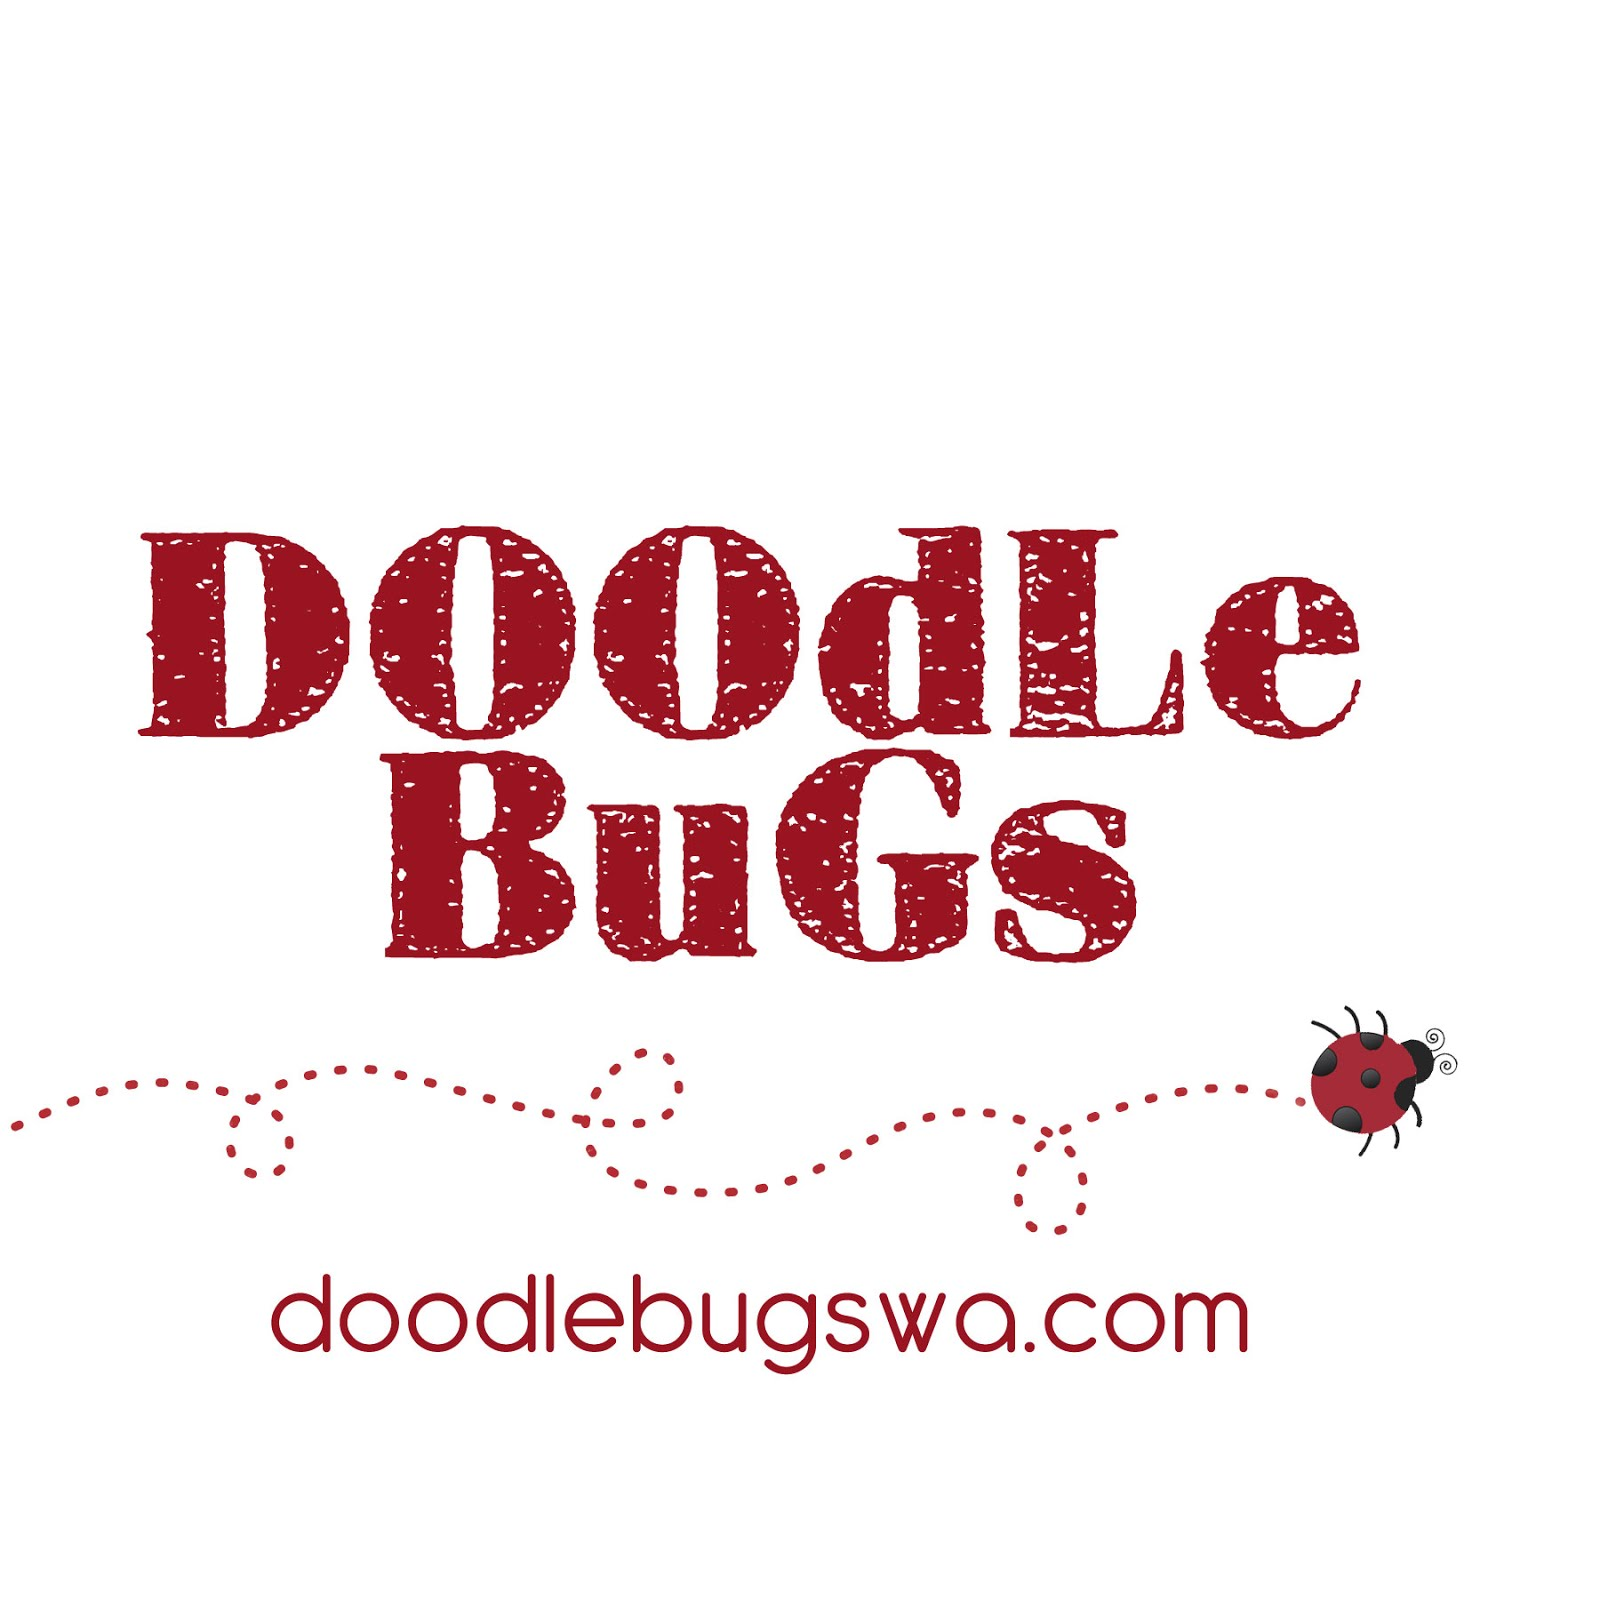 DoodleBugs FREE Shipping for all orders over $30. No discount code needed!